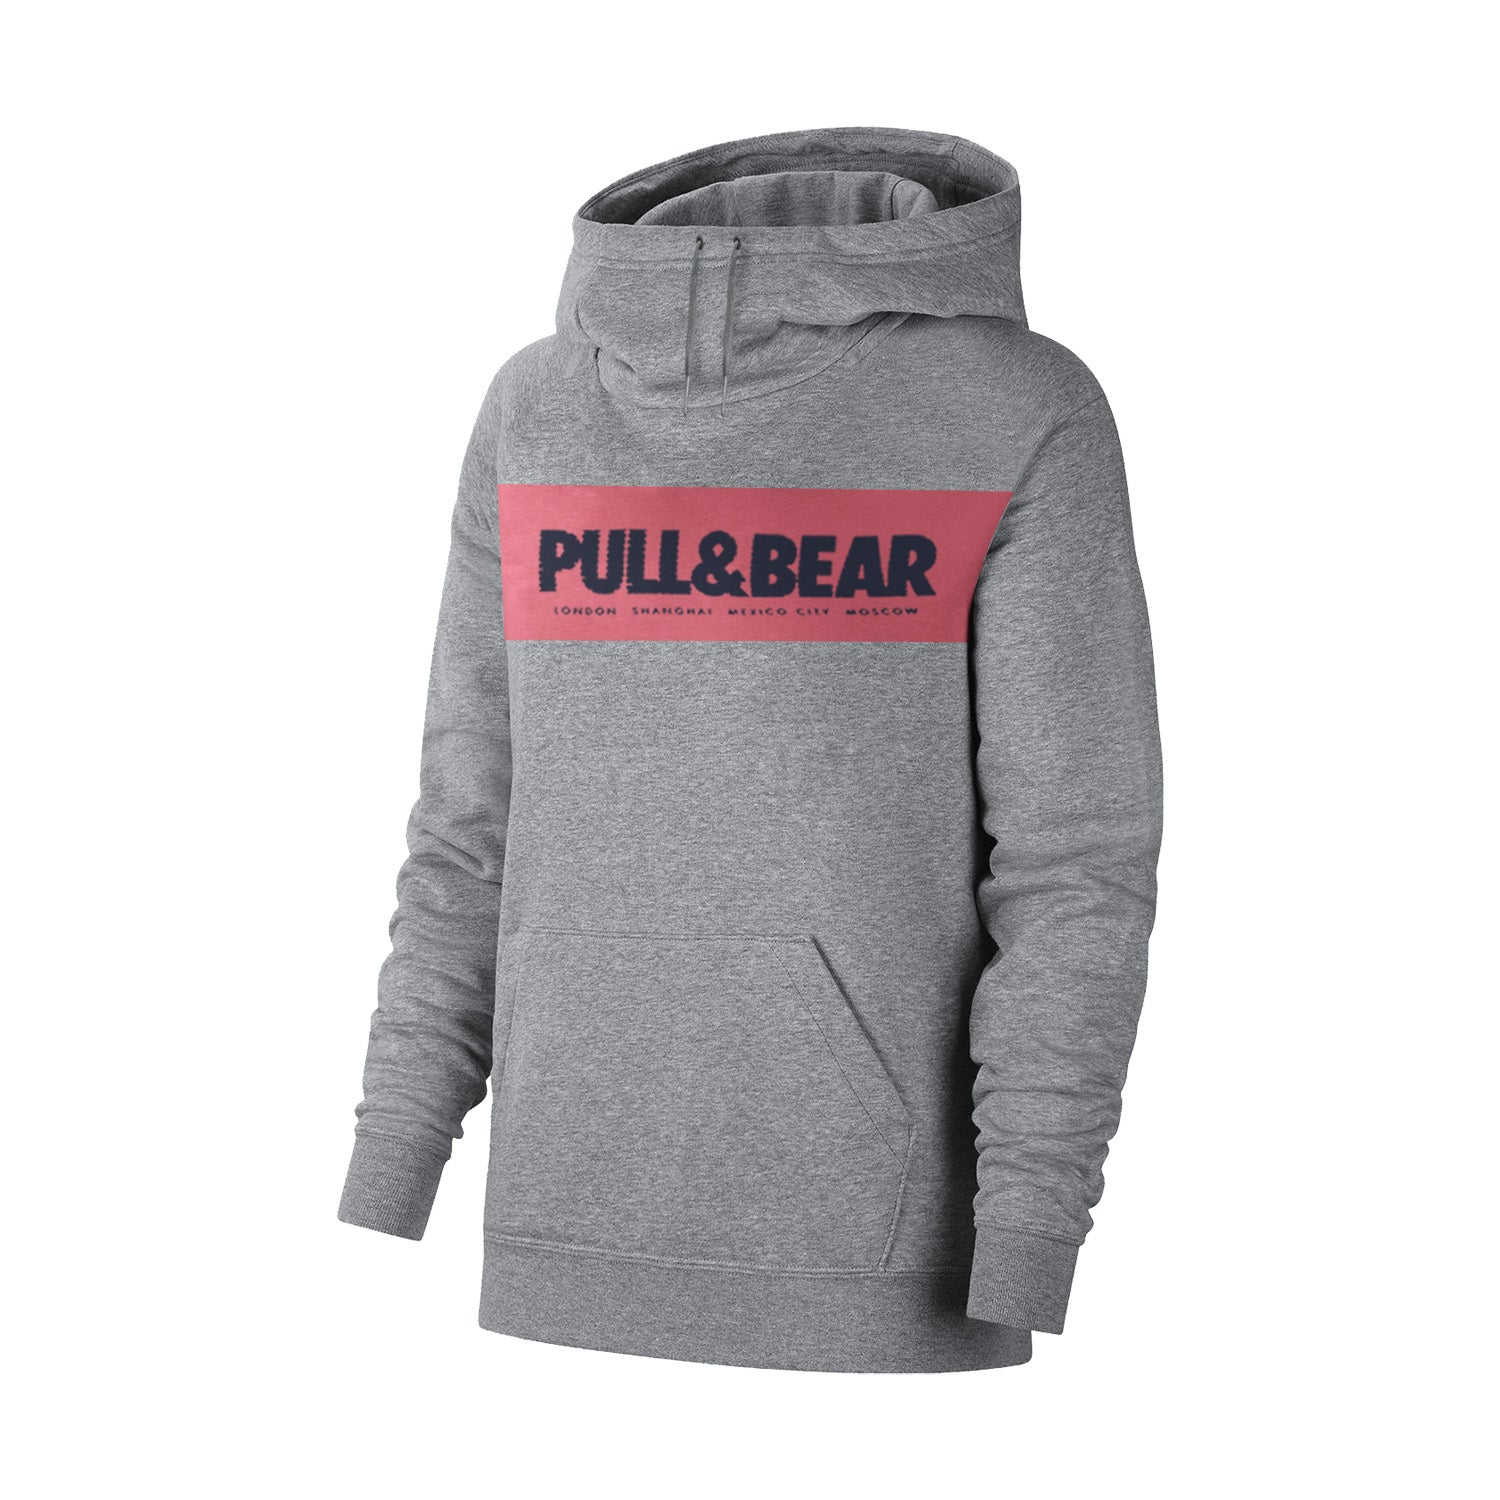 P&B Fleece Pullover Hoodie For Men-Charcoal Melange with Pink Panel-BE13227